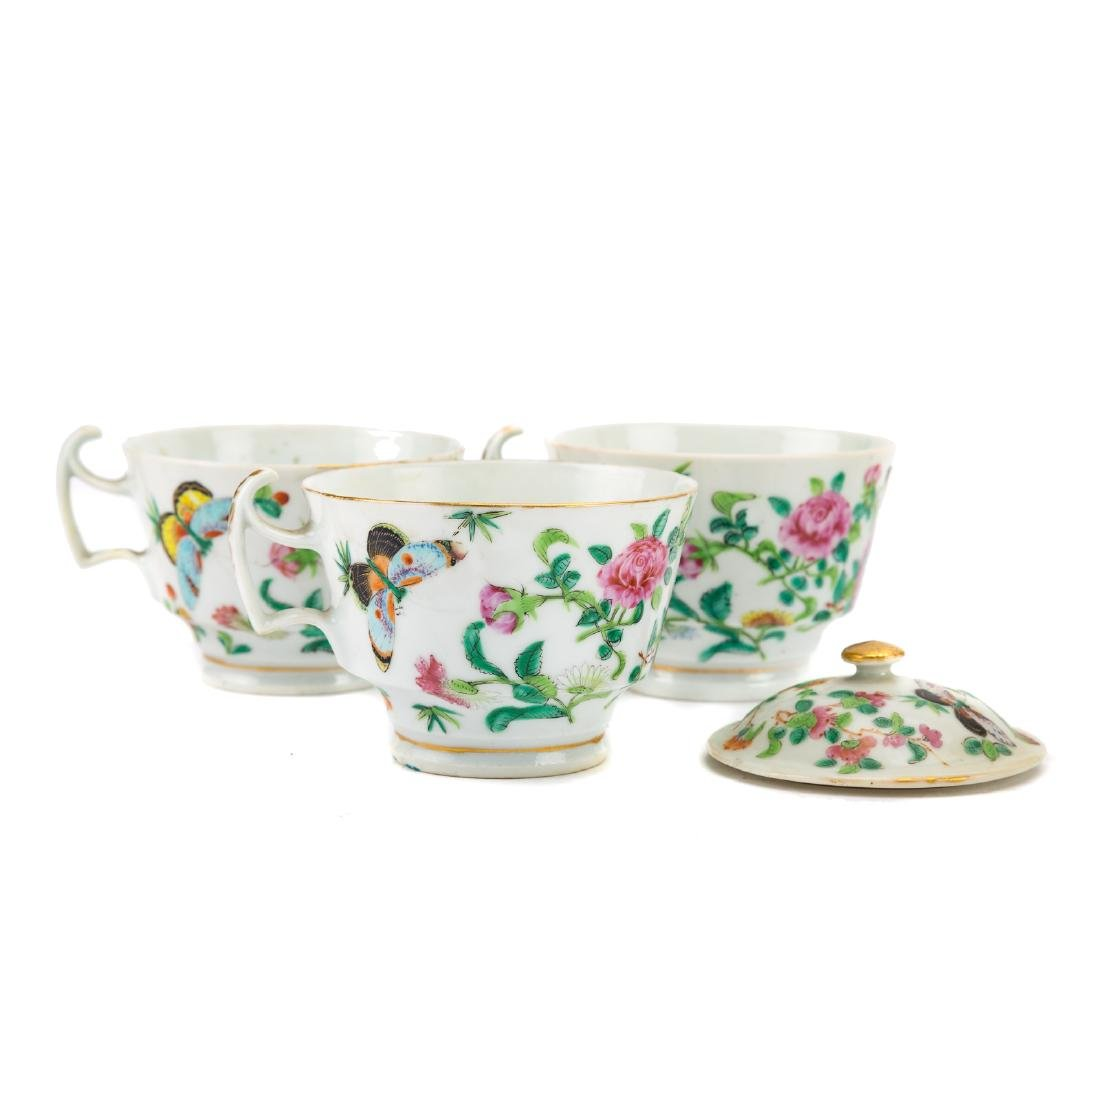 13-piece Chinese Export Famille Rose tea set - 3